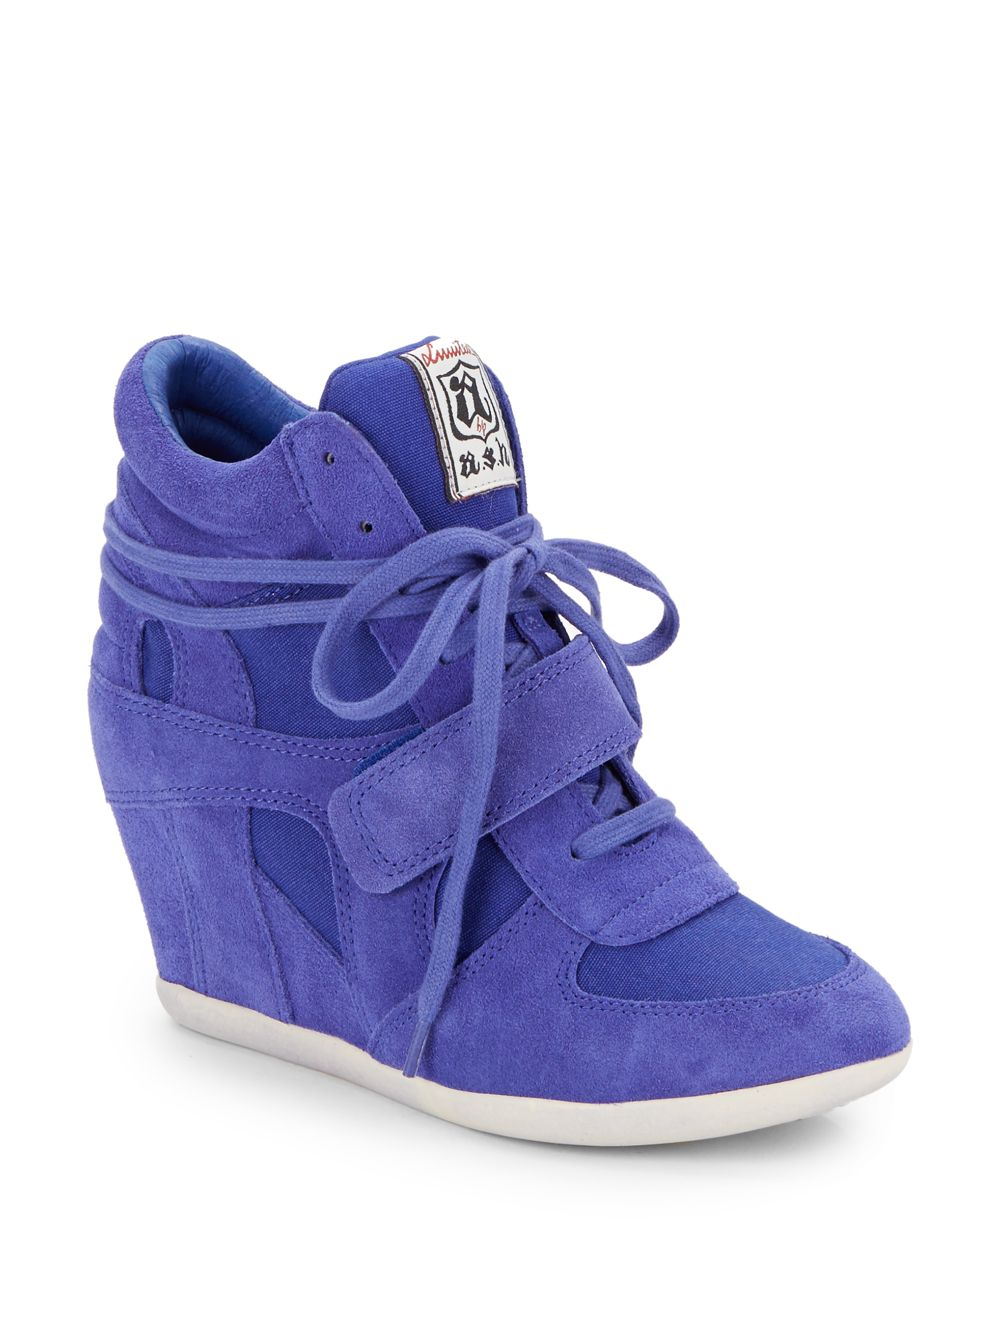 Sapphire Blue Wedge Shoes